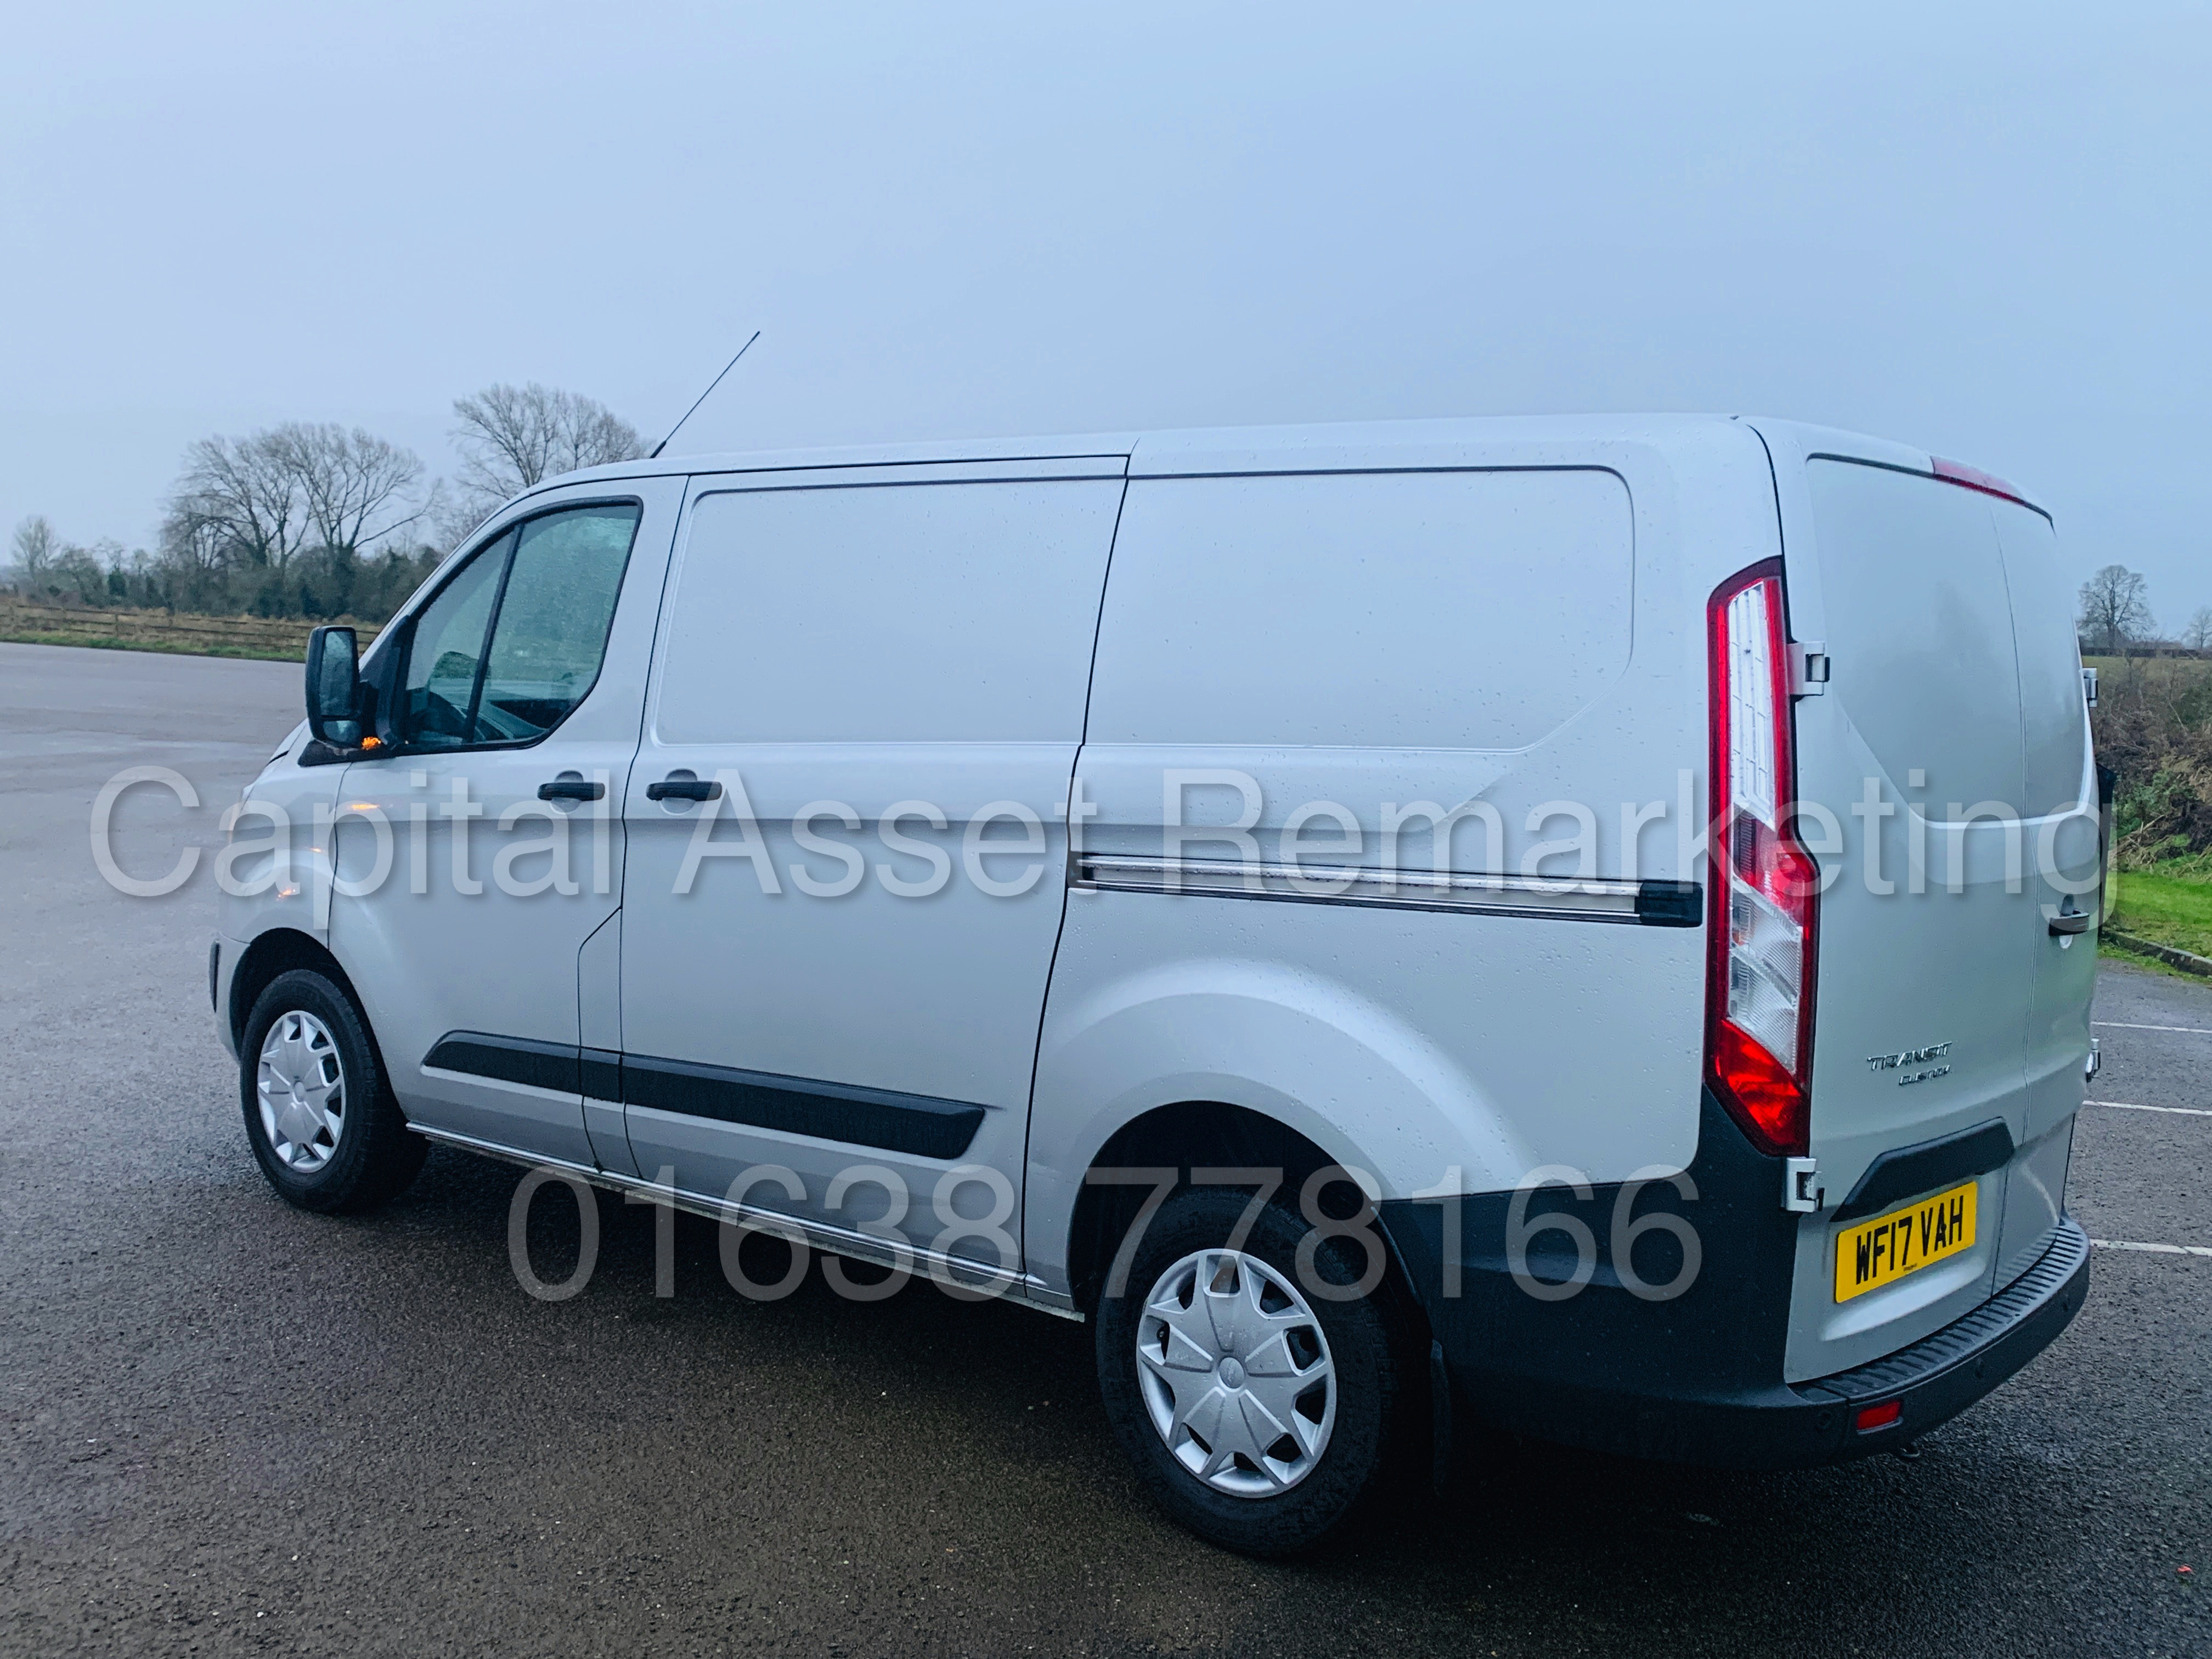 (On Sale) FORD TRANSIT *TREND* 290 SWB (2017 - EURO 6 / AD-BLUE) '2.0 TDCI - 130 BHP - 6 SPEED' - Image 8 of 41